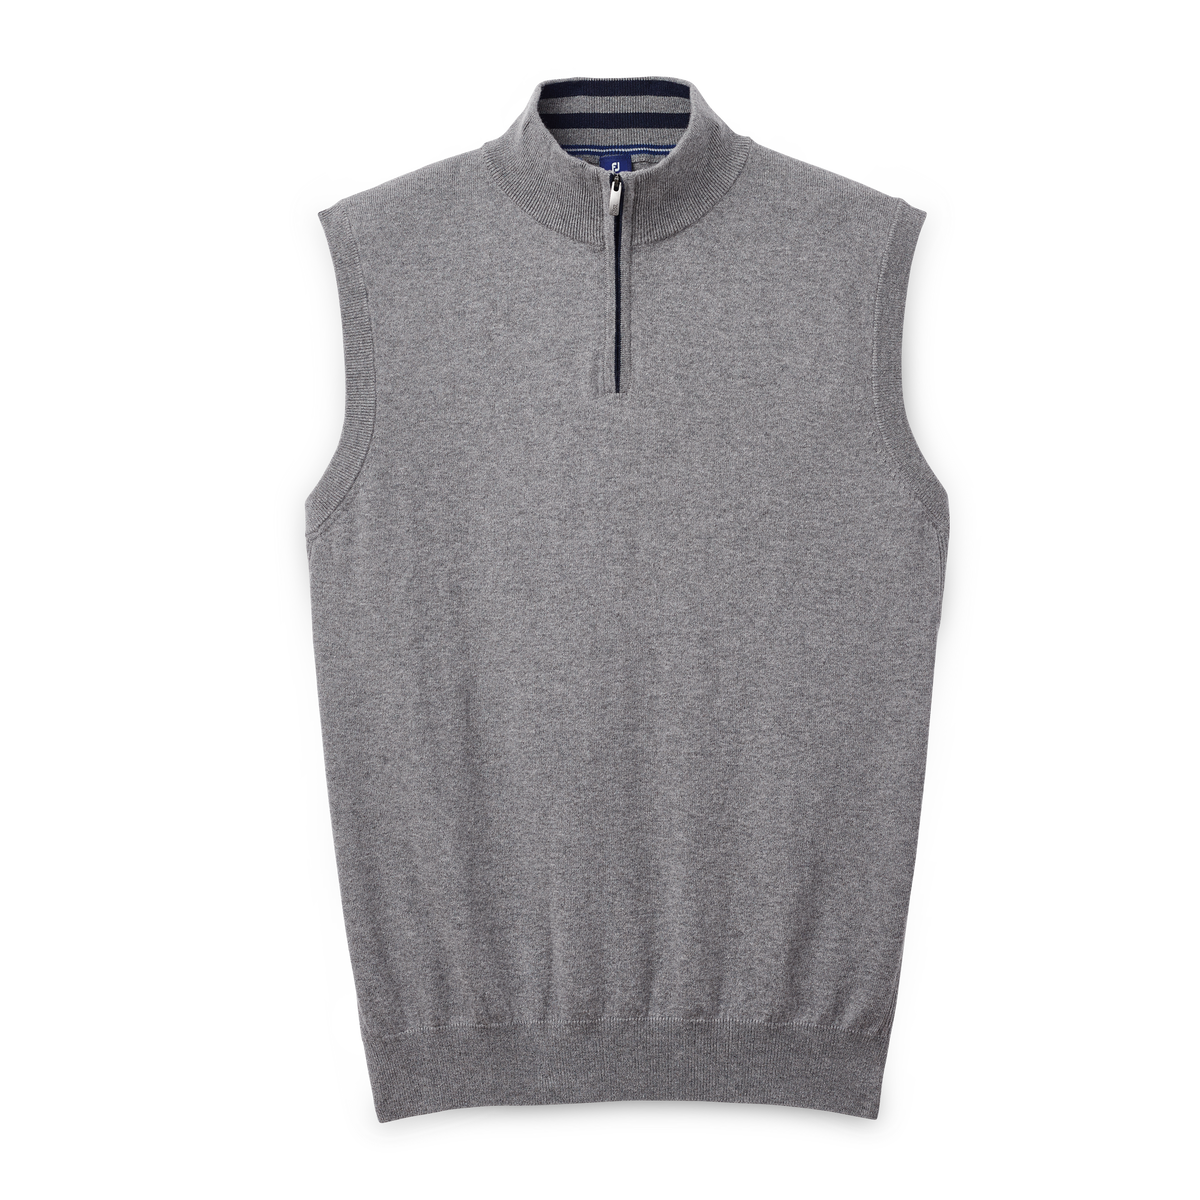 Cotton Cashmere Quarter-Zip Sweater Vest